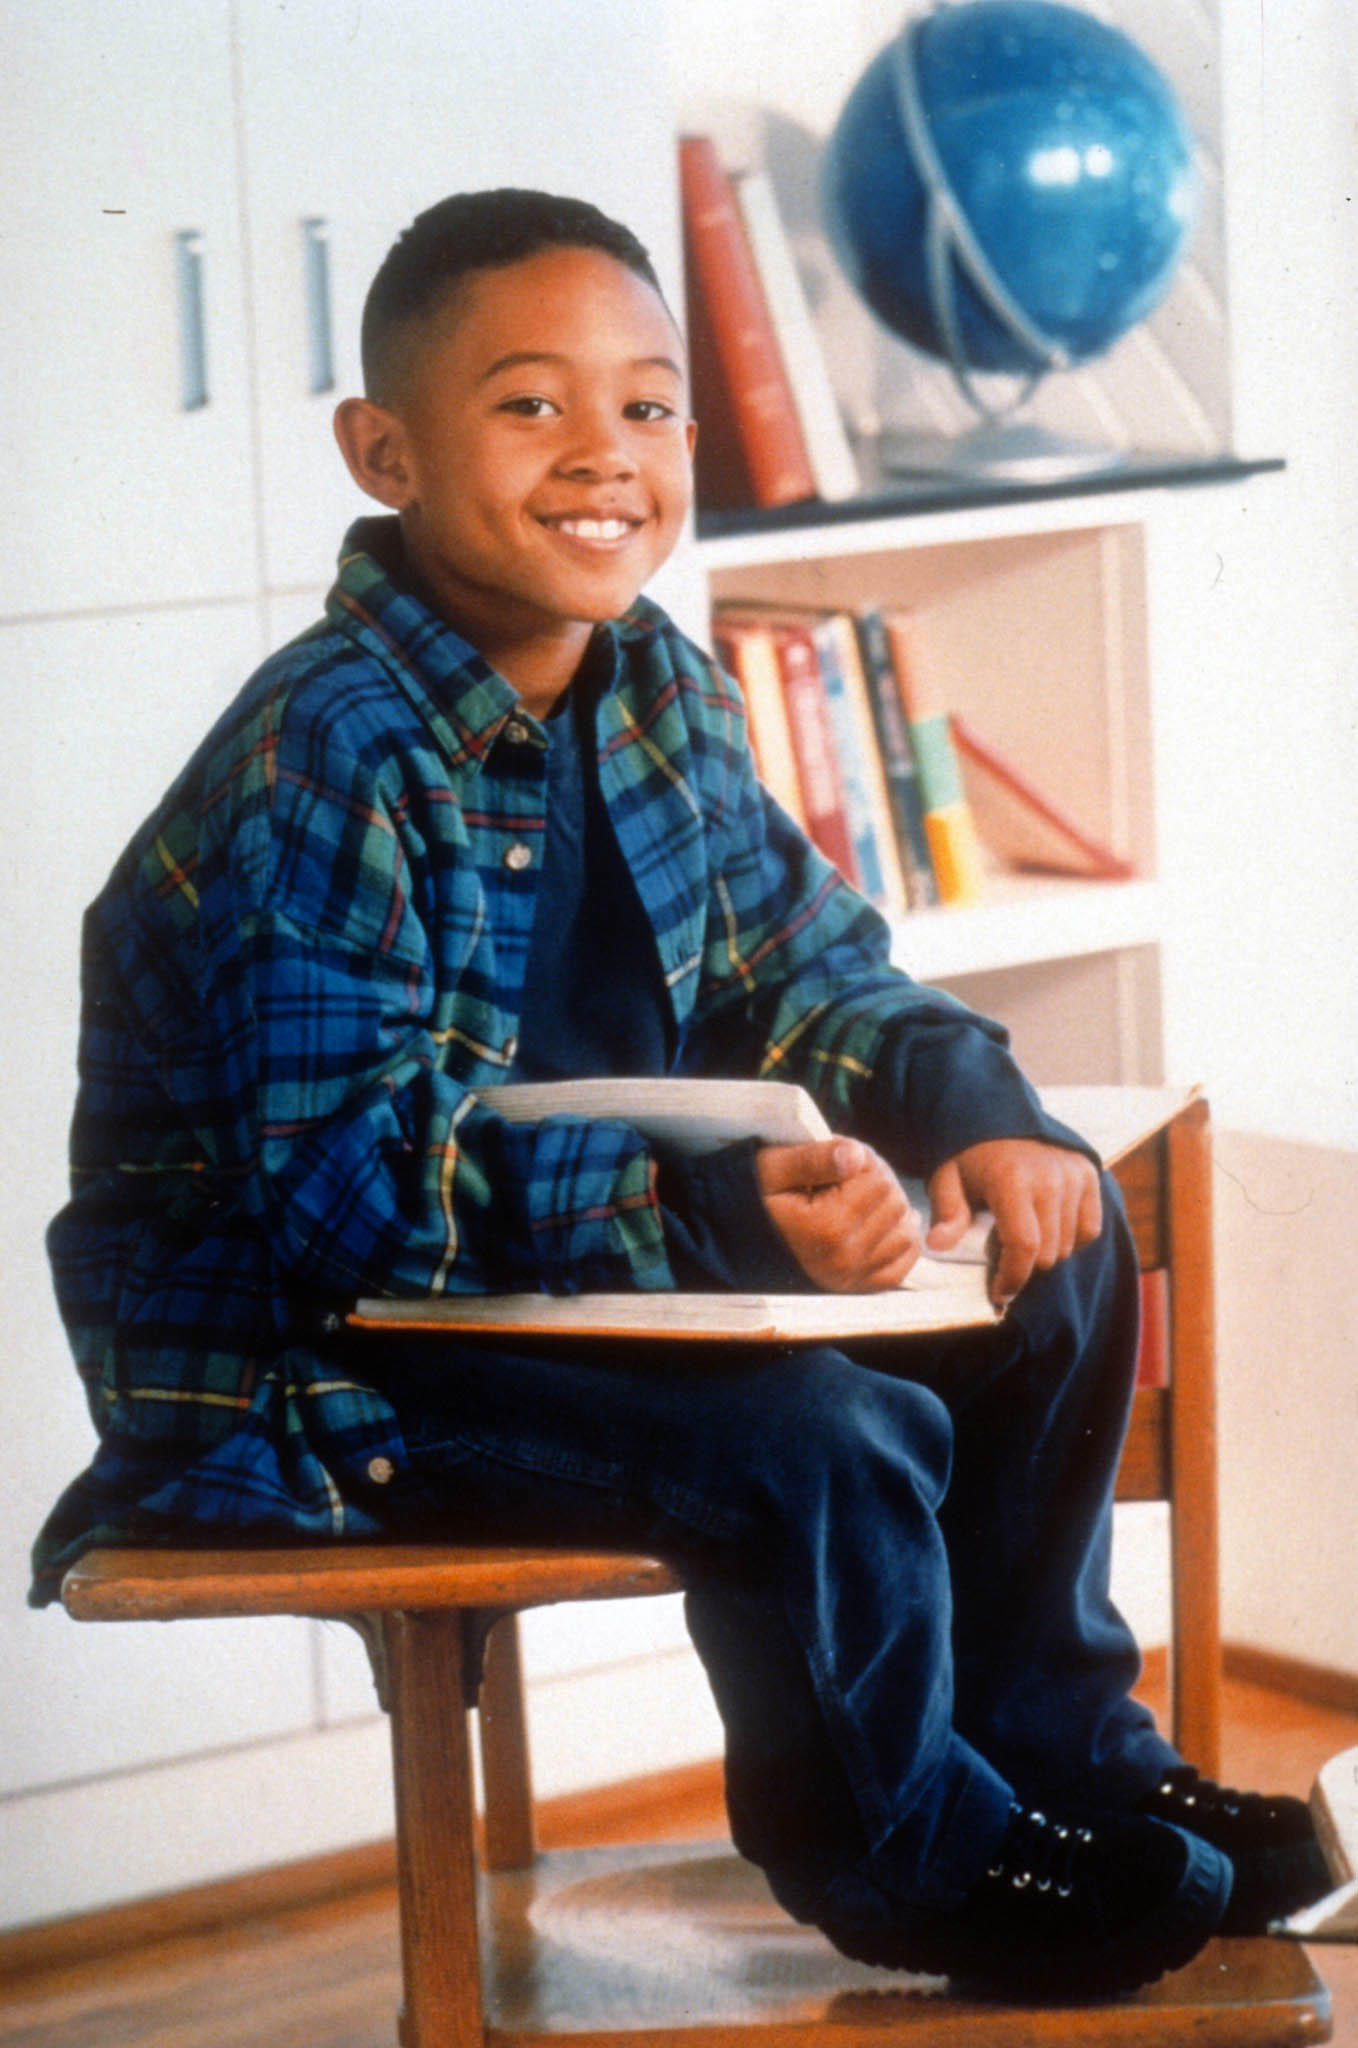 90s-kids-shows-08-smart-guy-tahj-mowry1